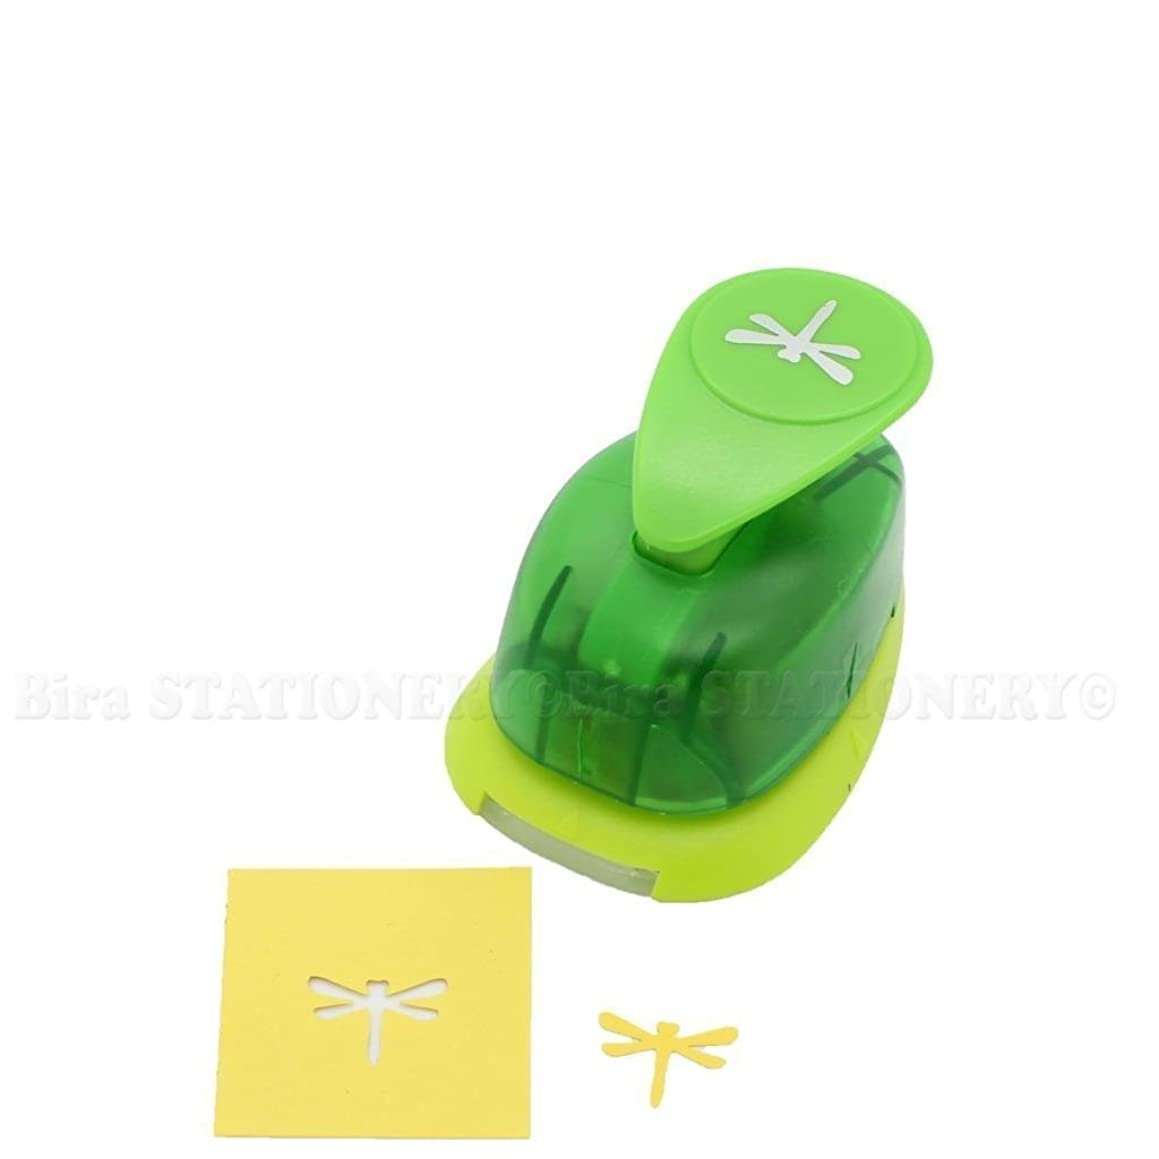 Bira 5/8 inch Dragonfly 2 Shape Lever Action Craft Punch for Paper Crafting Scrapbooking